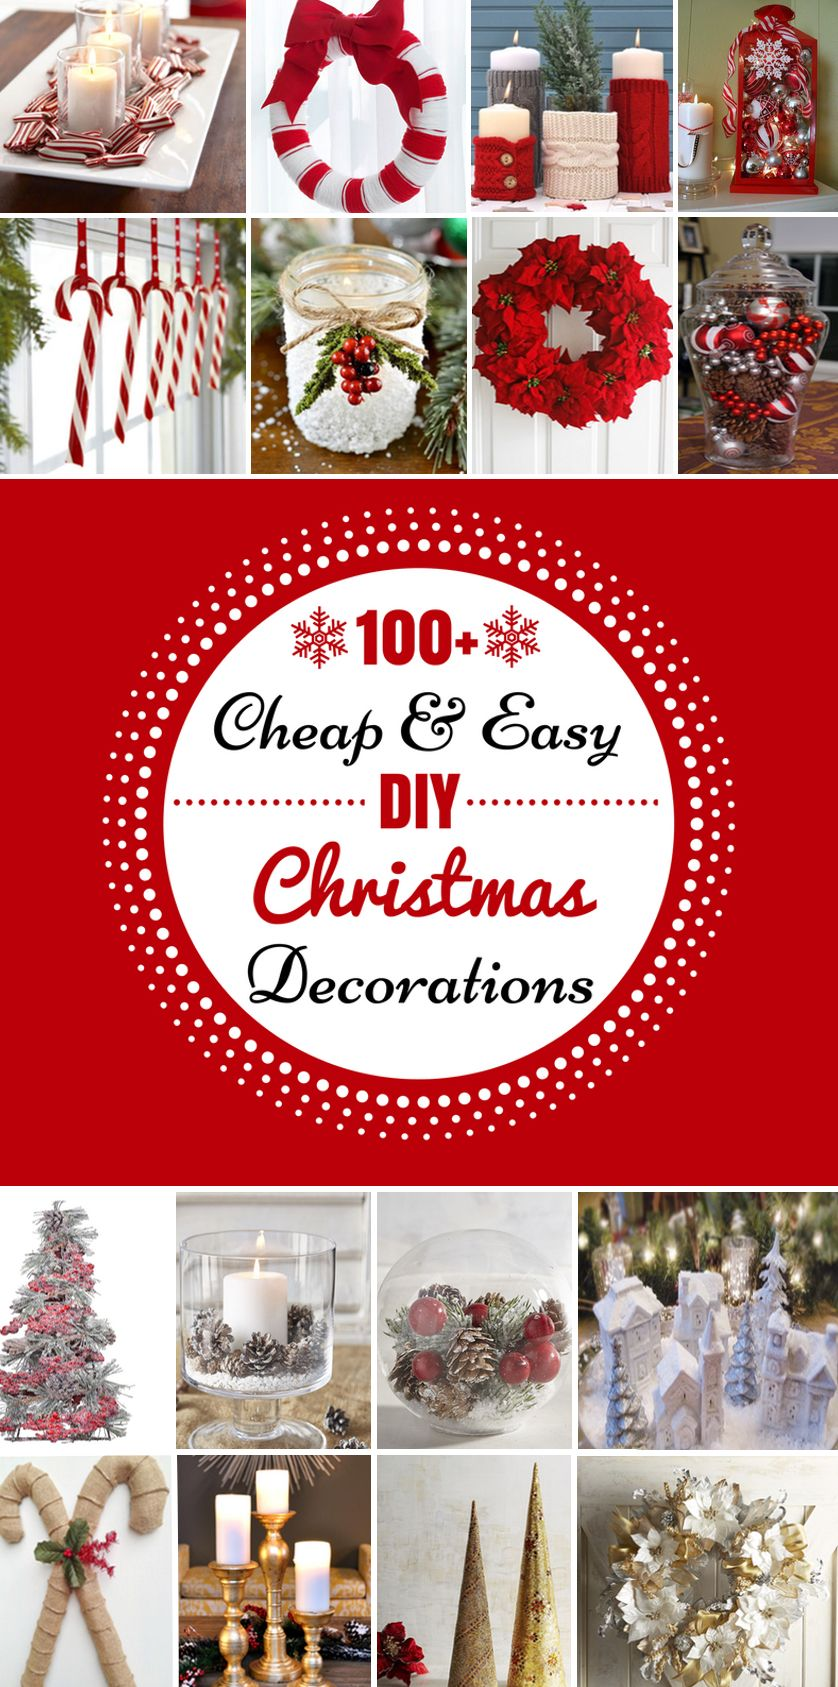 100 Cheap & Easy DIY Christmas Decorations | Holiday Decor ...